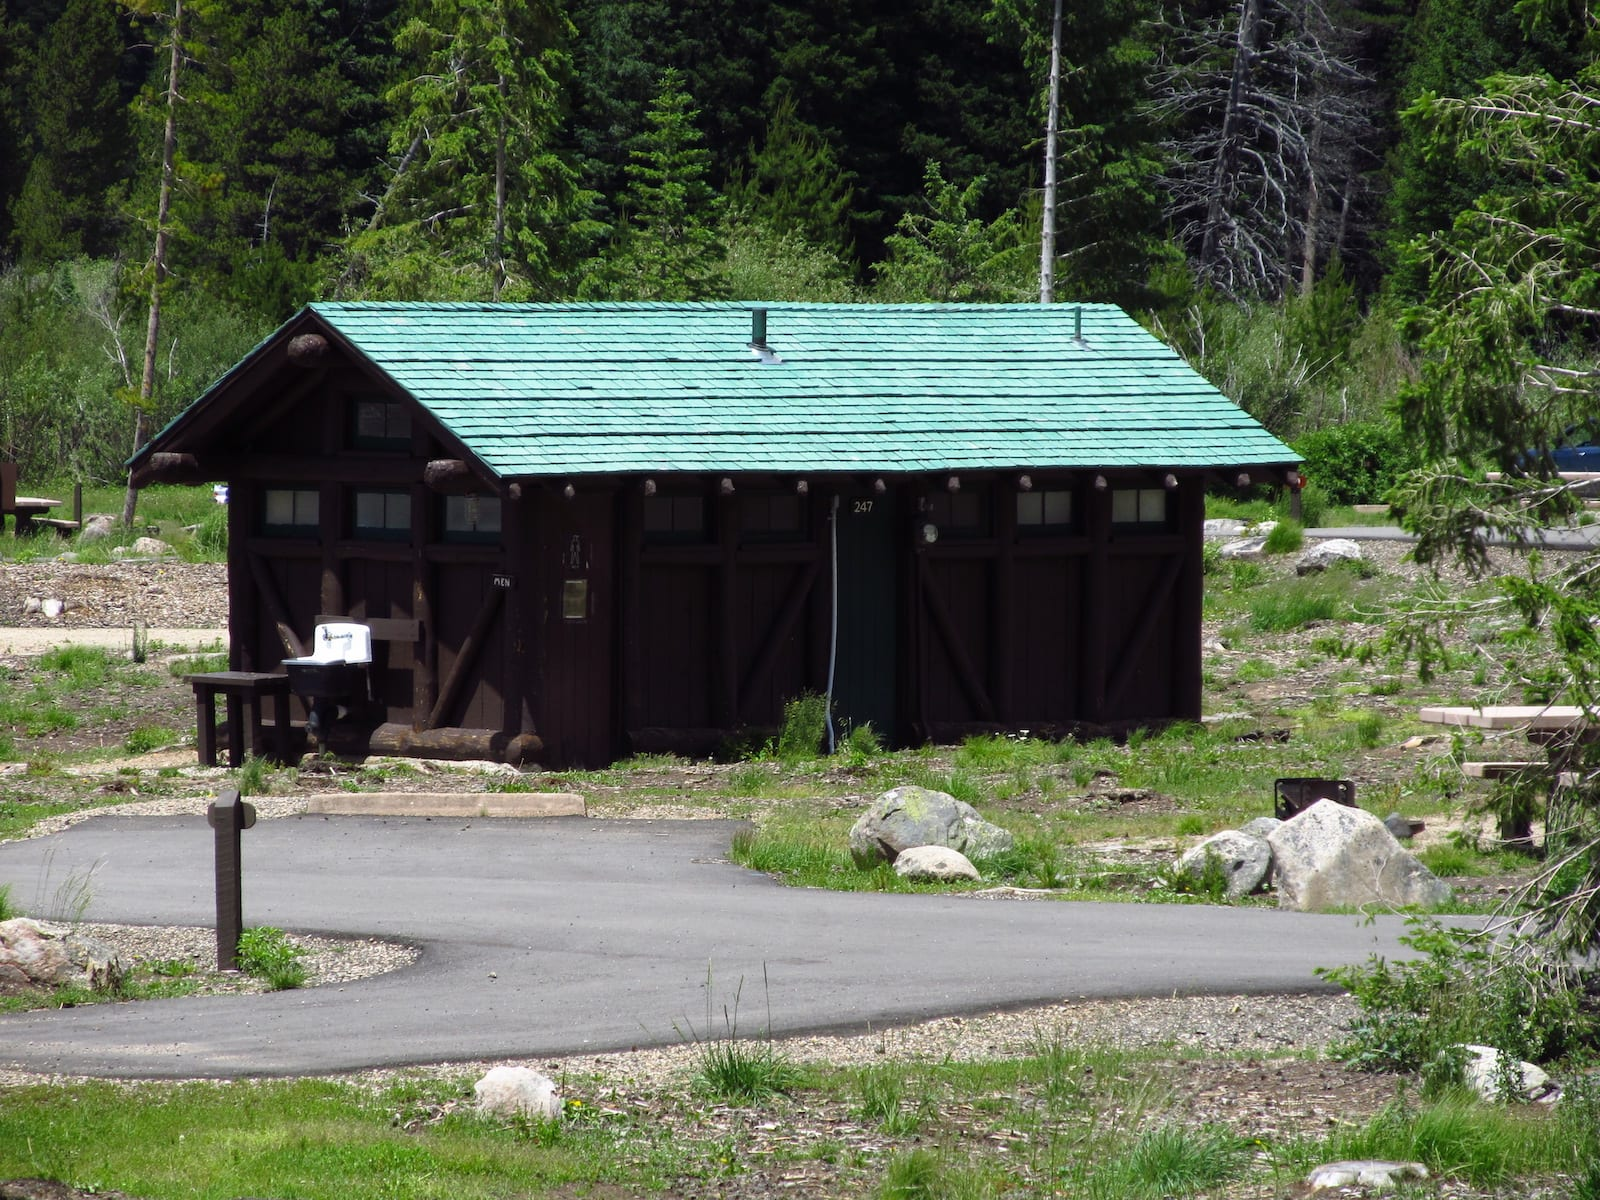 Timber Creek Campground Comfort Station